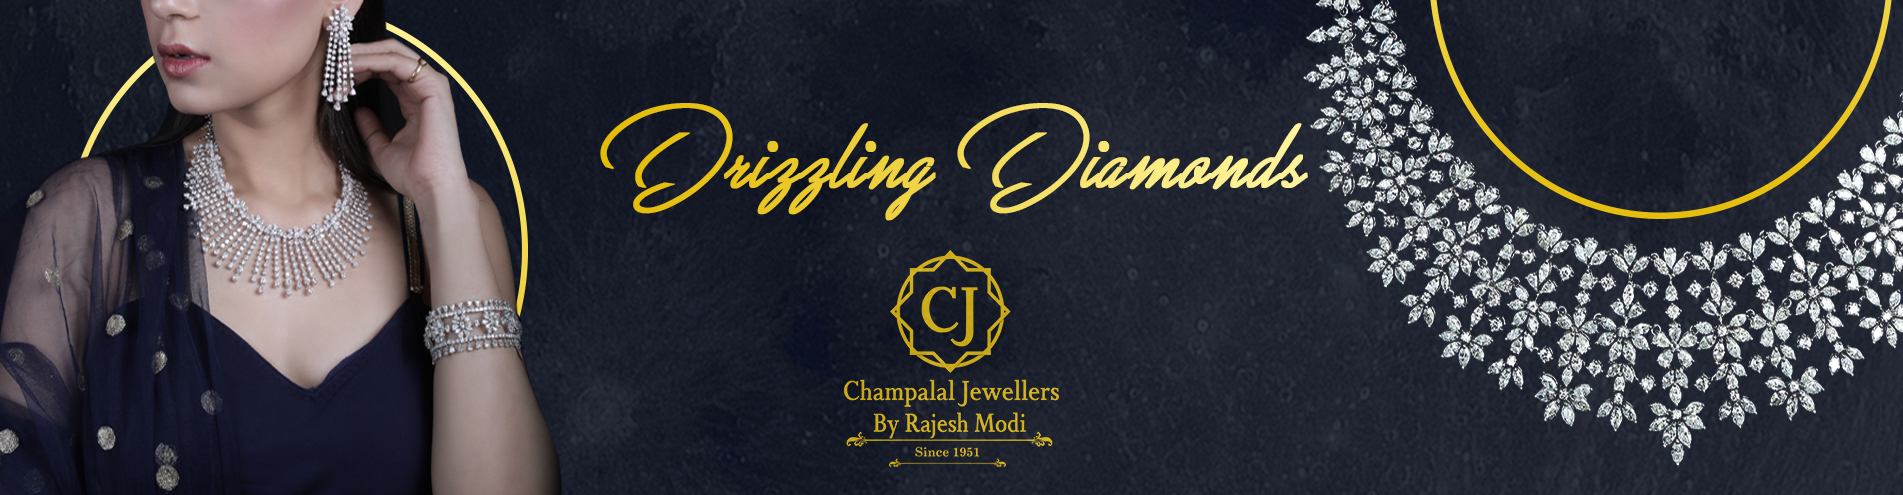 Drizzling Diamond